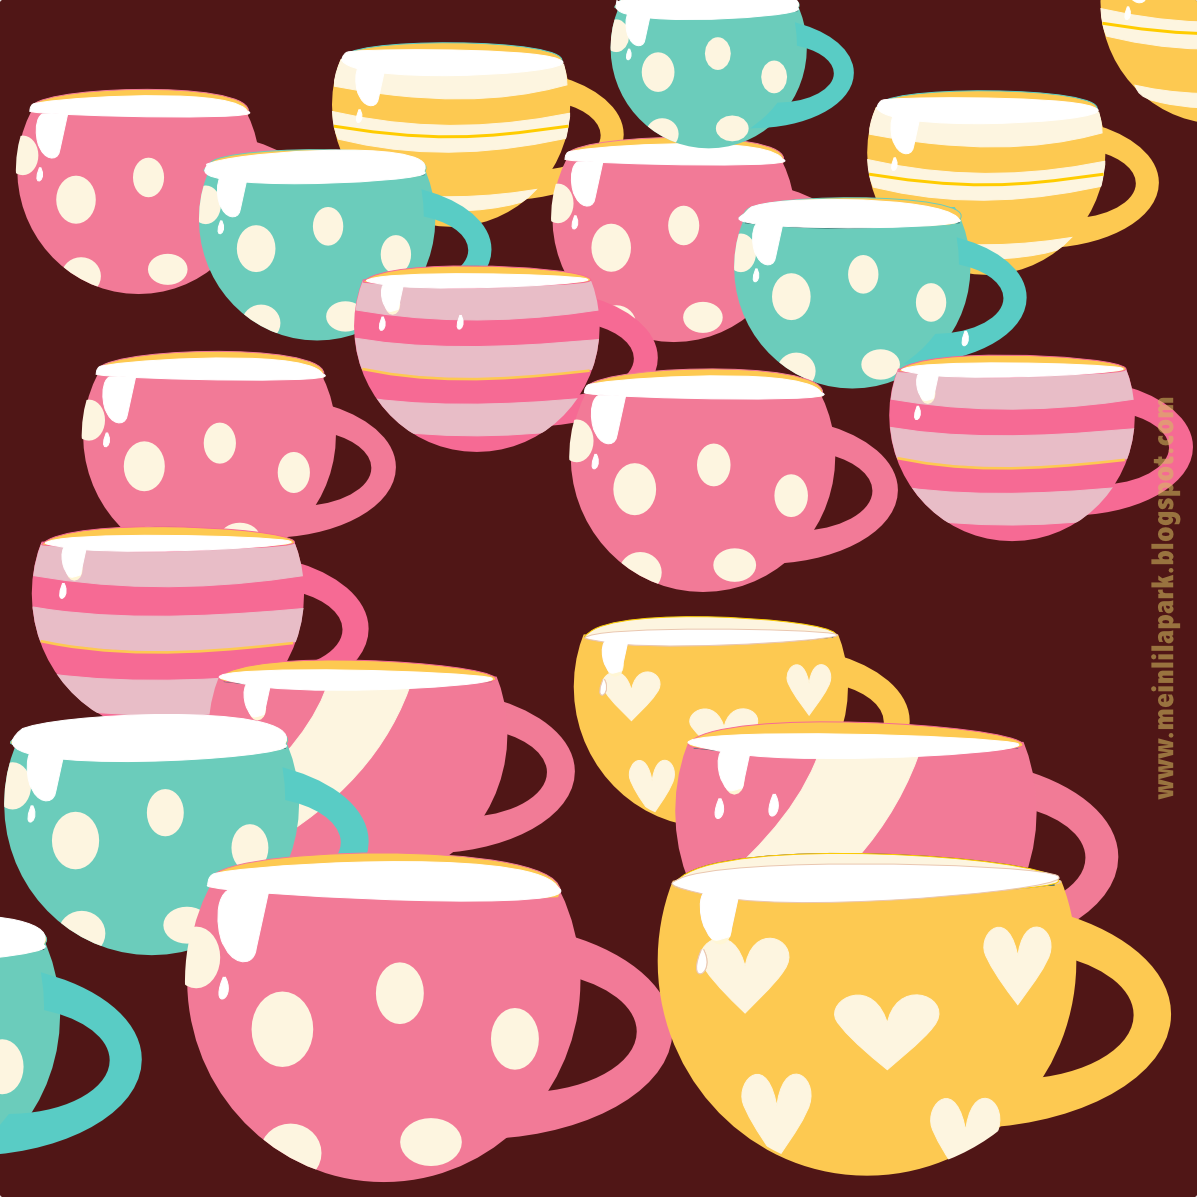 Free digital coffee scrapbooking papers and border - ausdruckbares ...